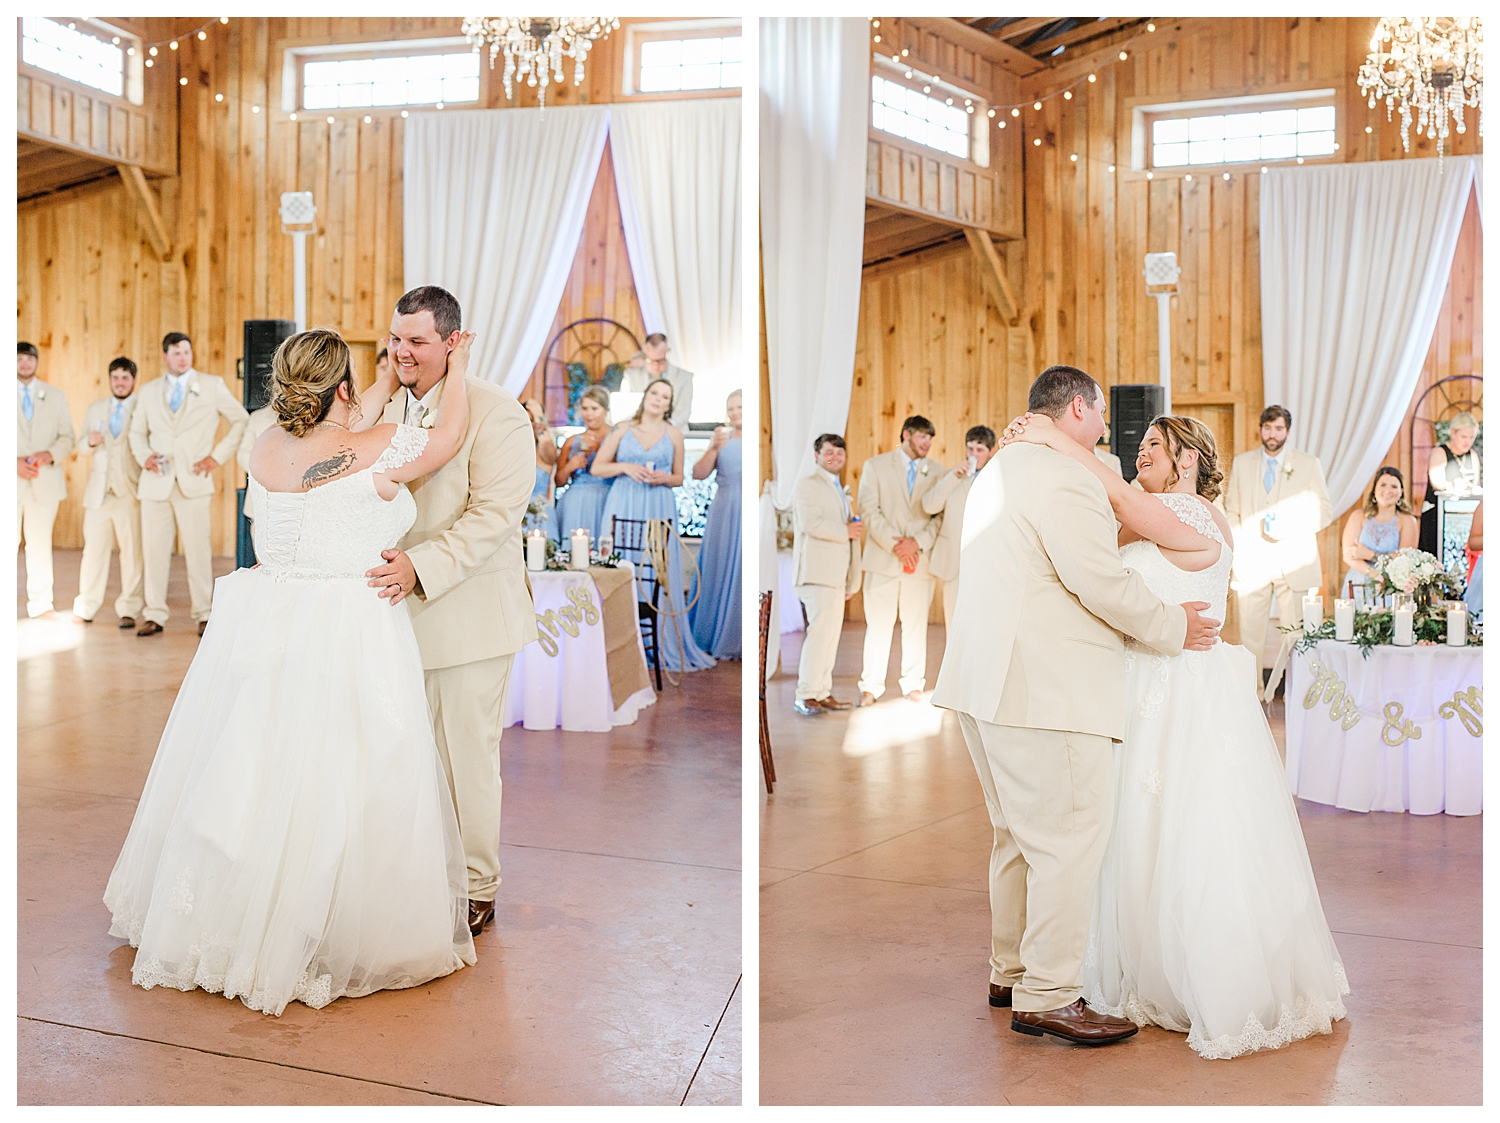 Twin Oaks Farm Barn Wedding